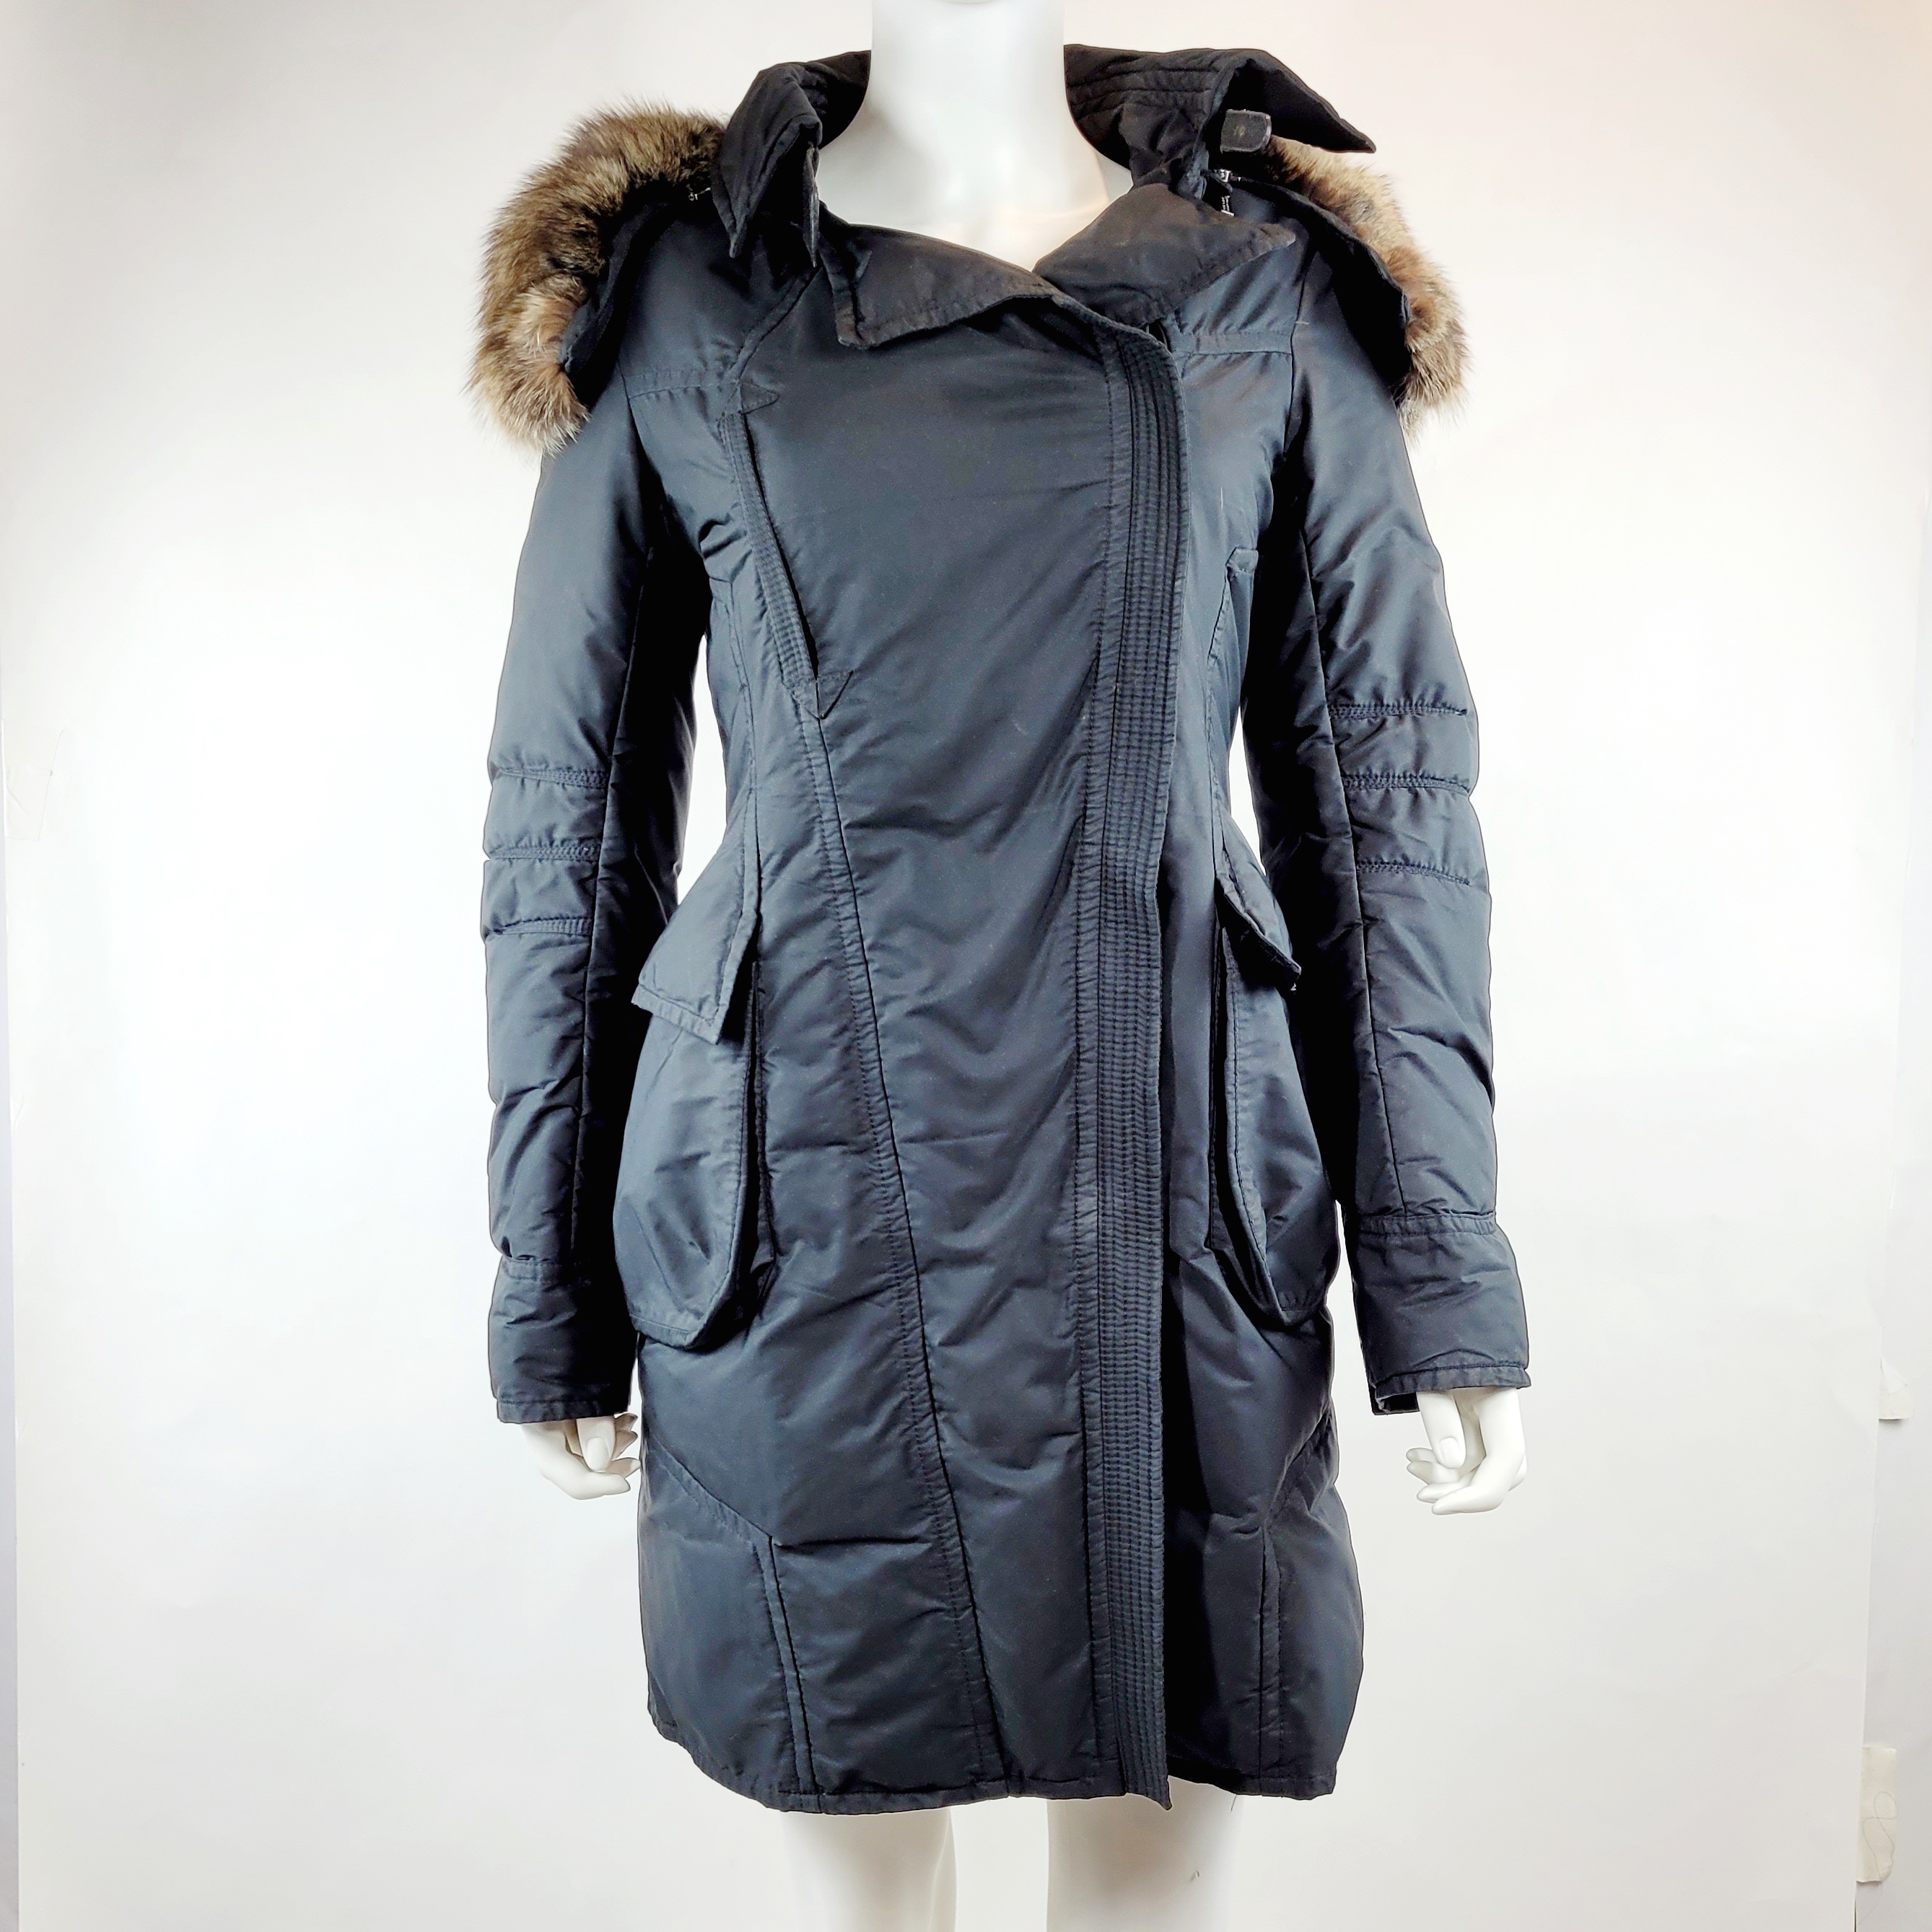 Ermanno Scervino Jacket/Coat in Black